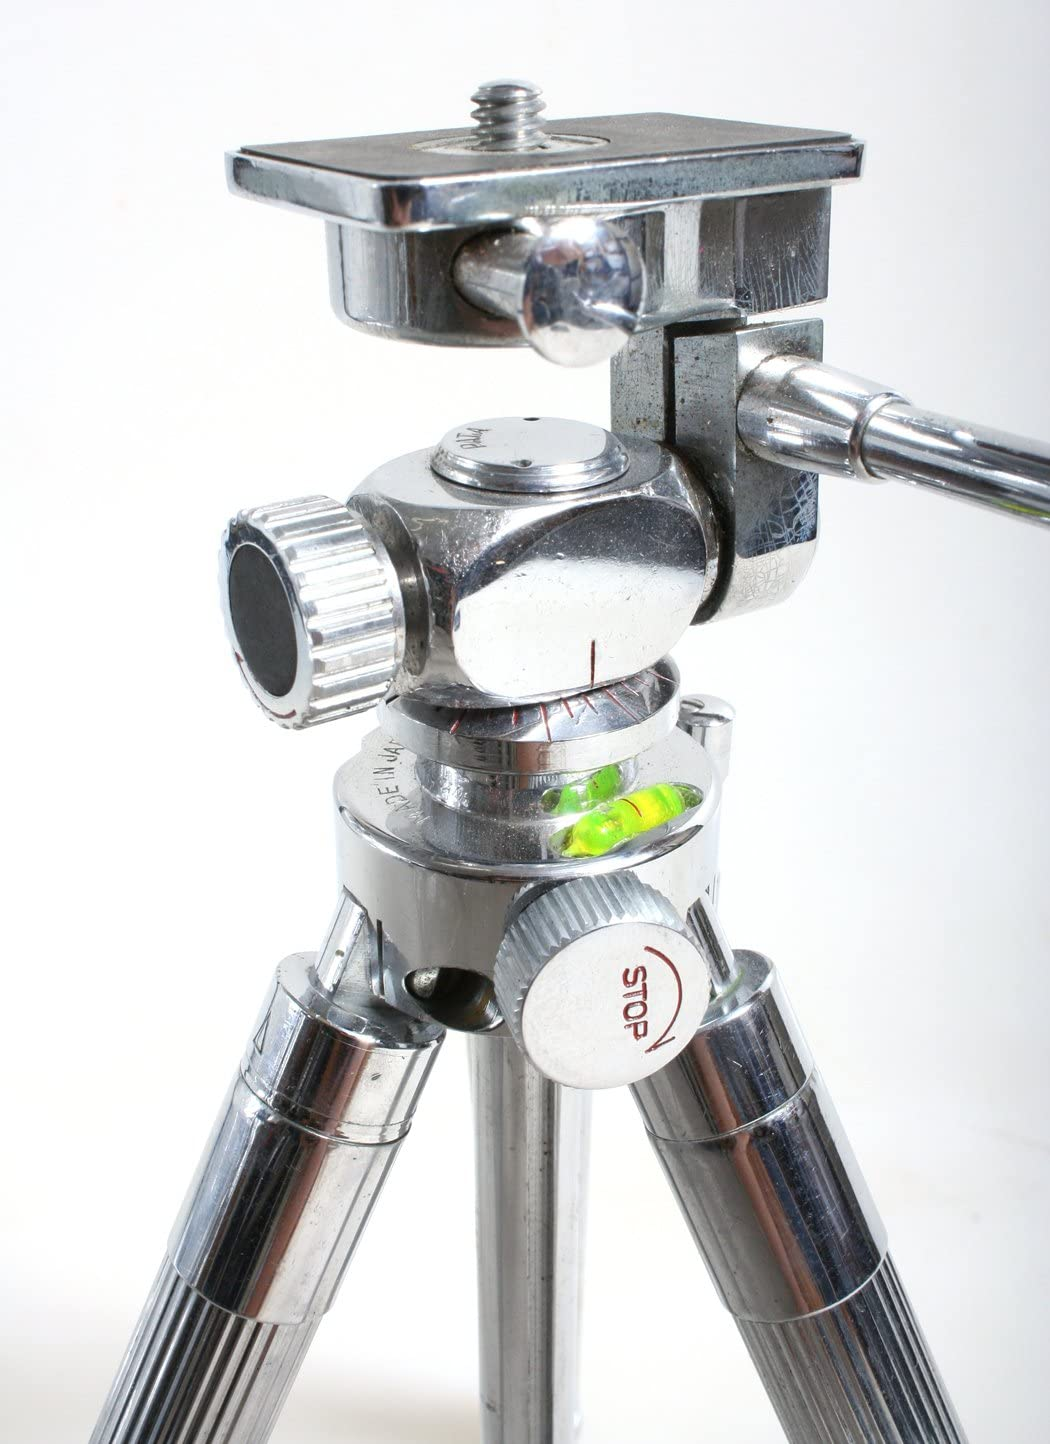 TRIPOD COMPACT CHROME LEVEL//BALL HEAD VINTAGE 1960S 12-48 INCH